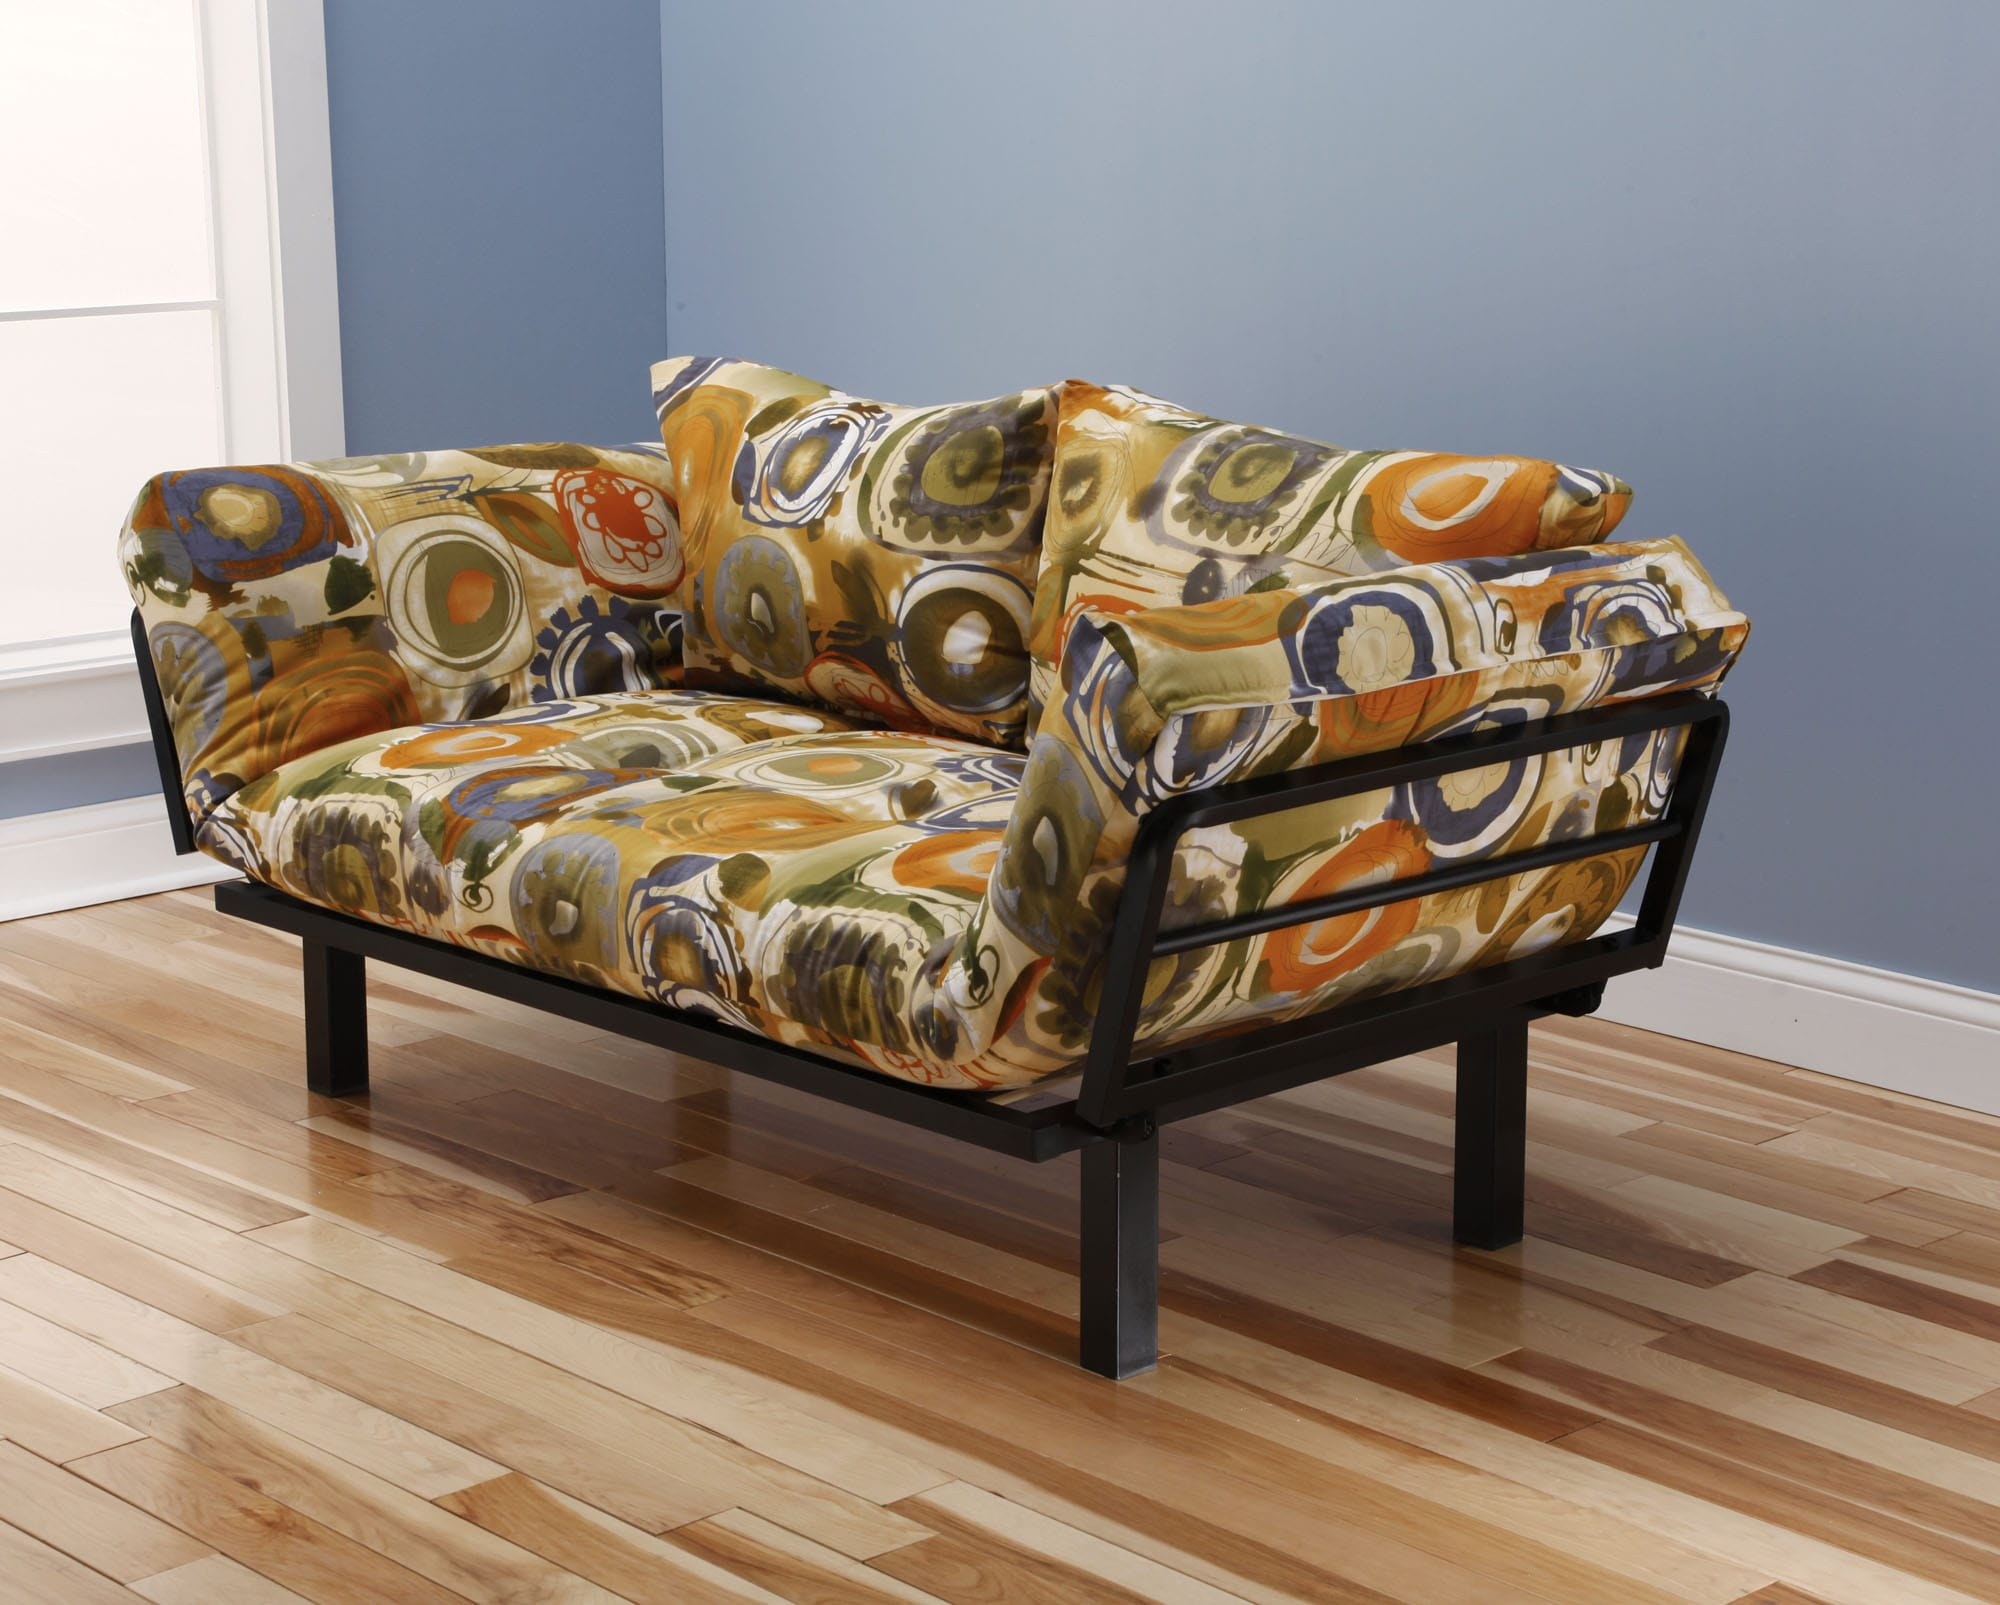 Spacely Futon Daybed Lounger With Mattress Enchanted Maze